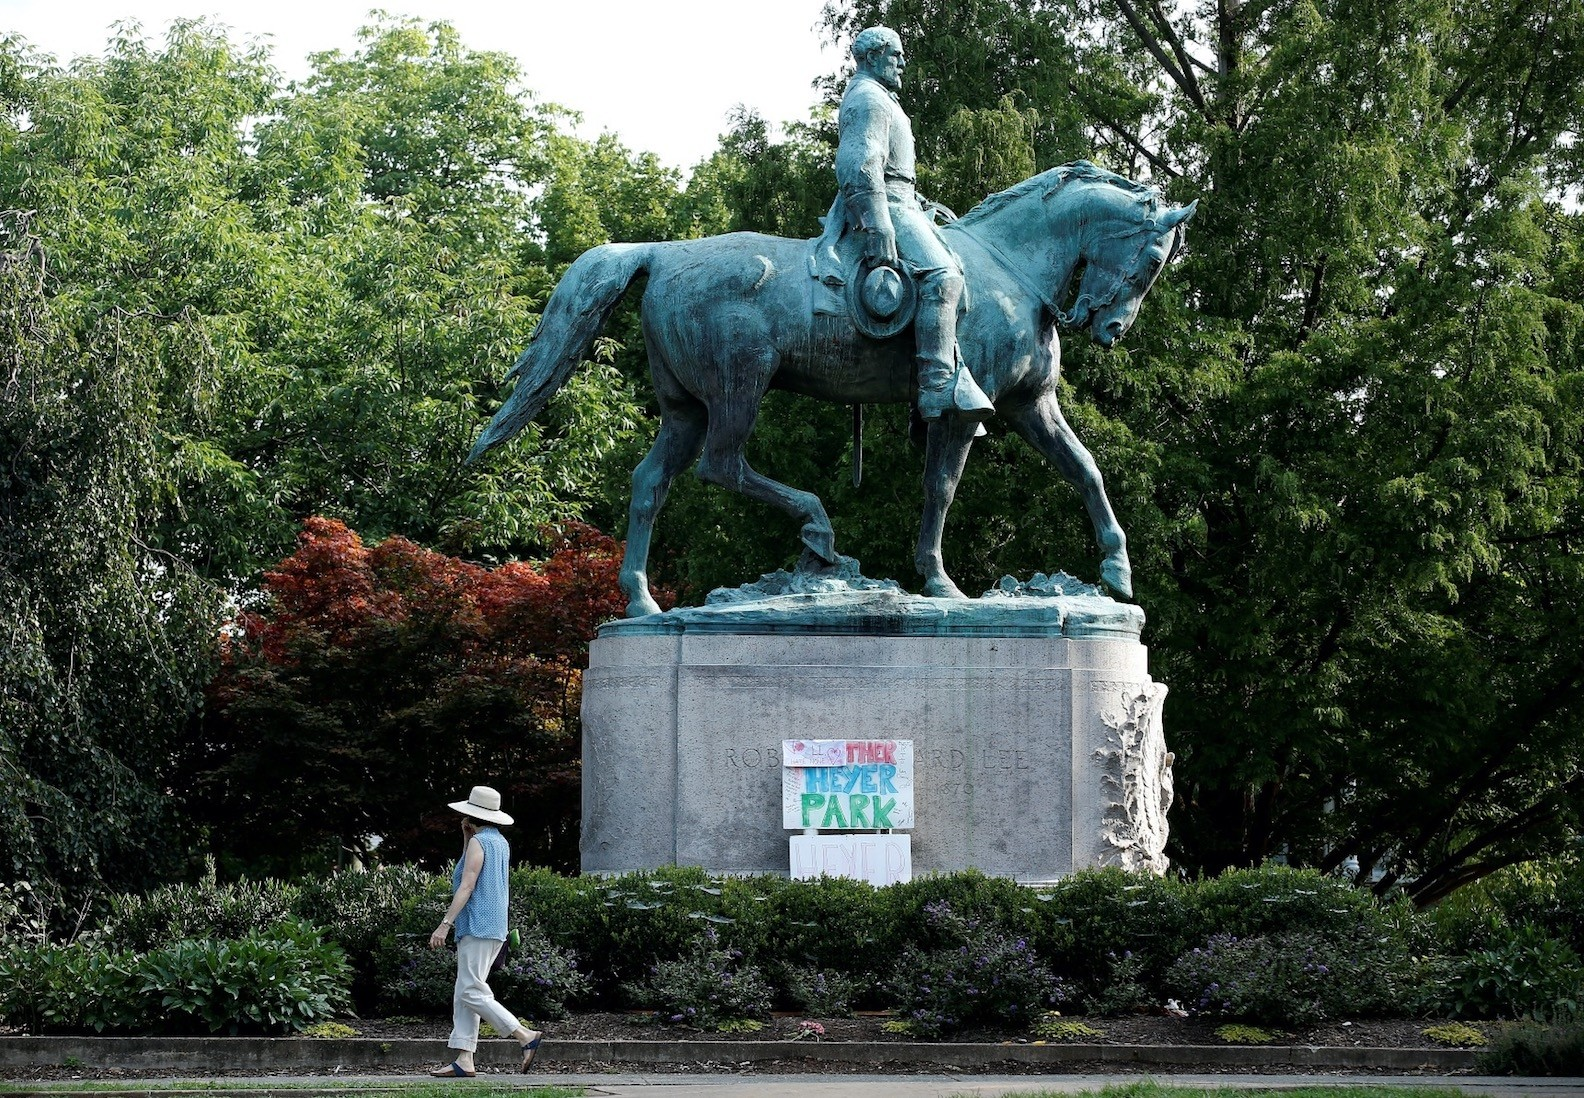 A sign on the statue of Robert E. Lee calls for the park to be renamed for Heather Heyer, who was killed at a far-right rally, Charlottesville, Virginia, Aug. 16.